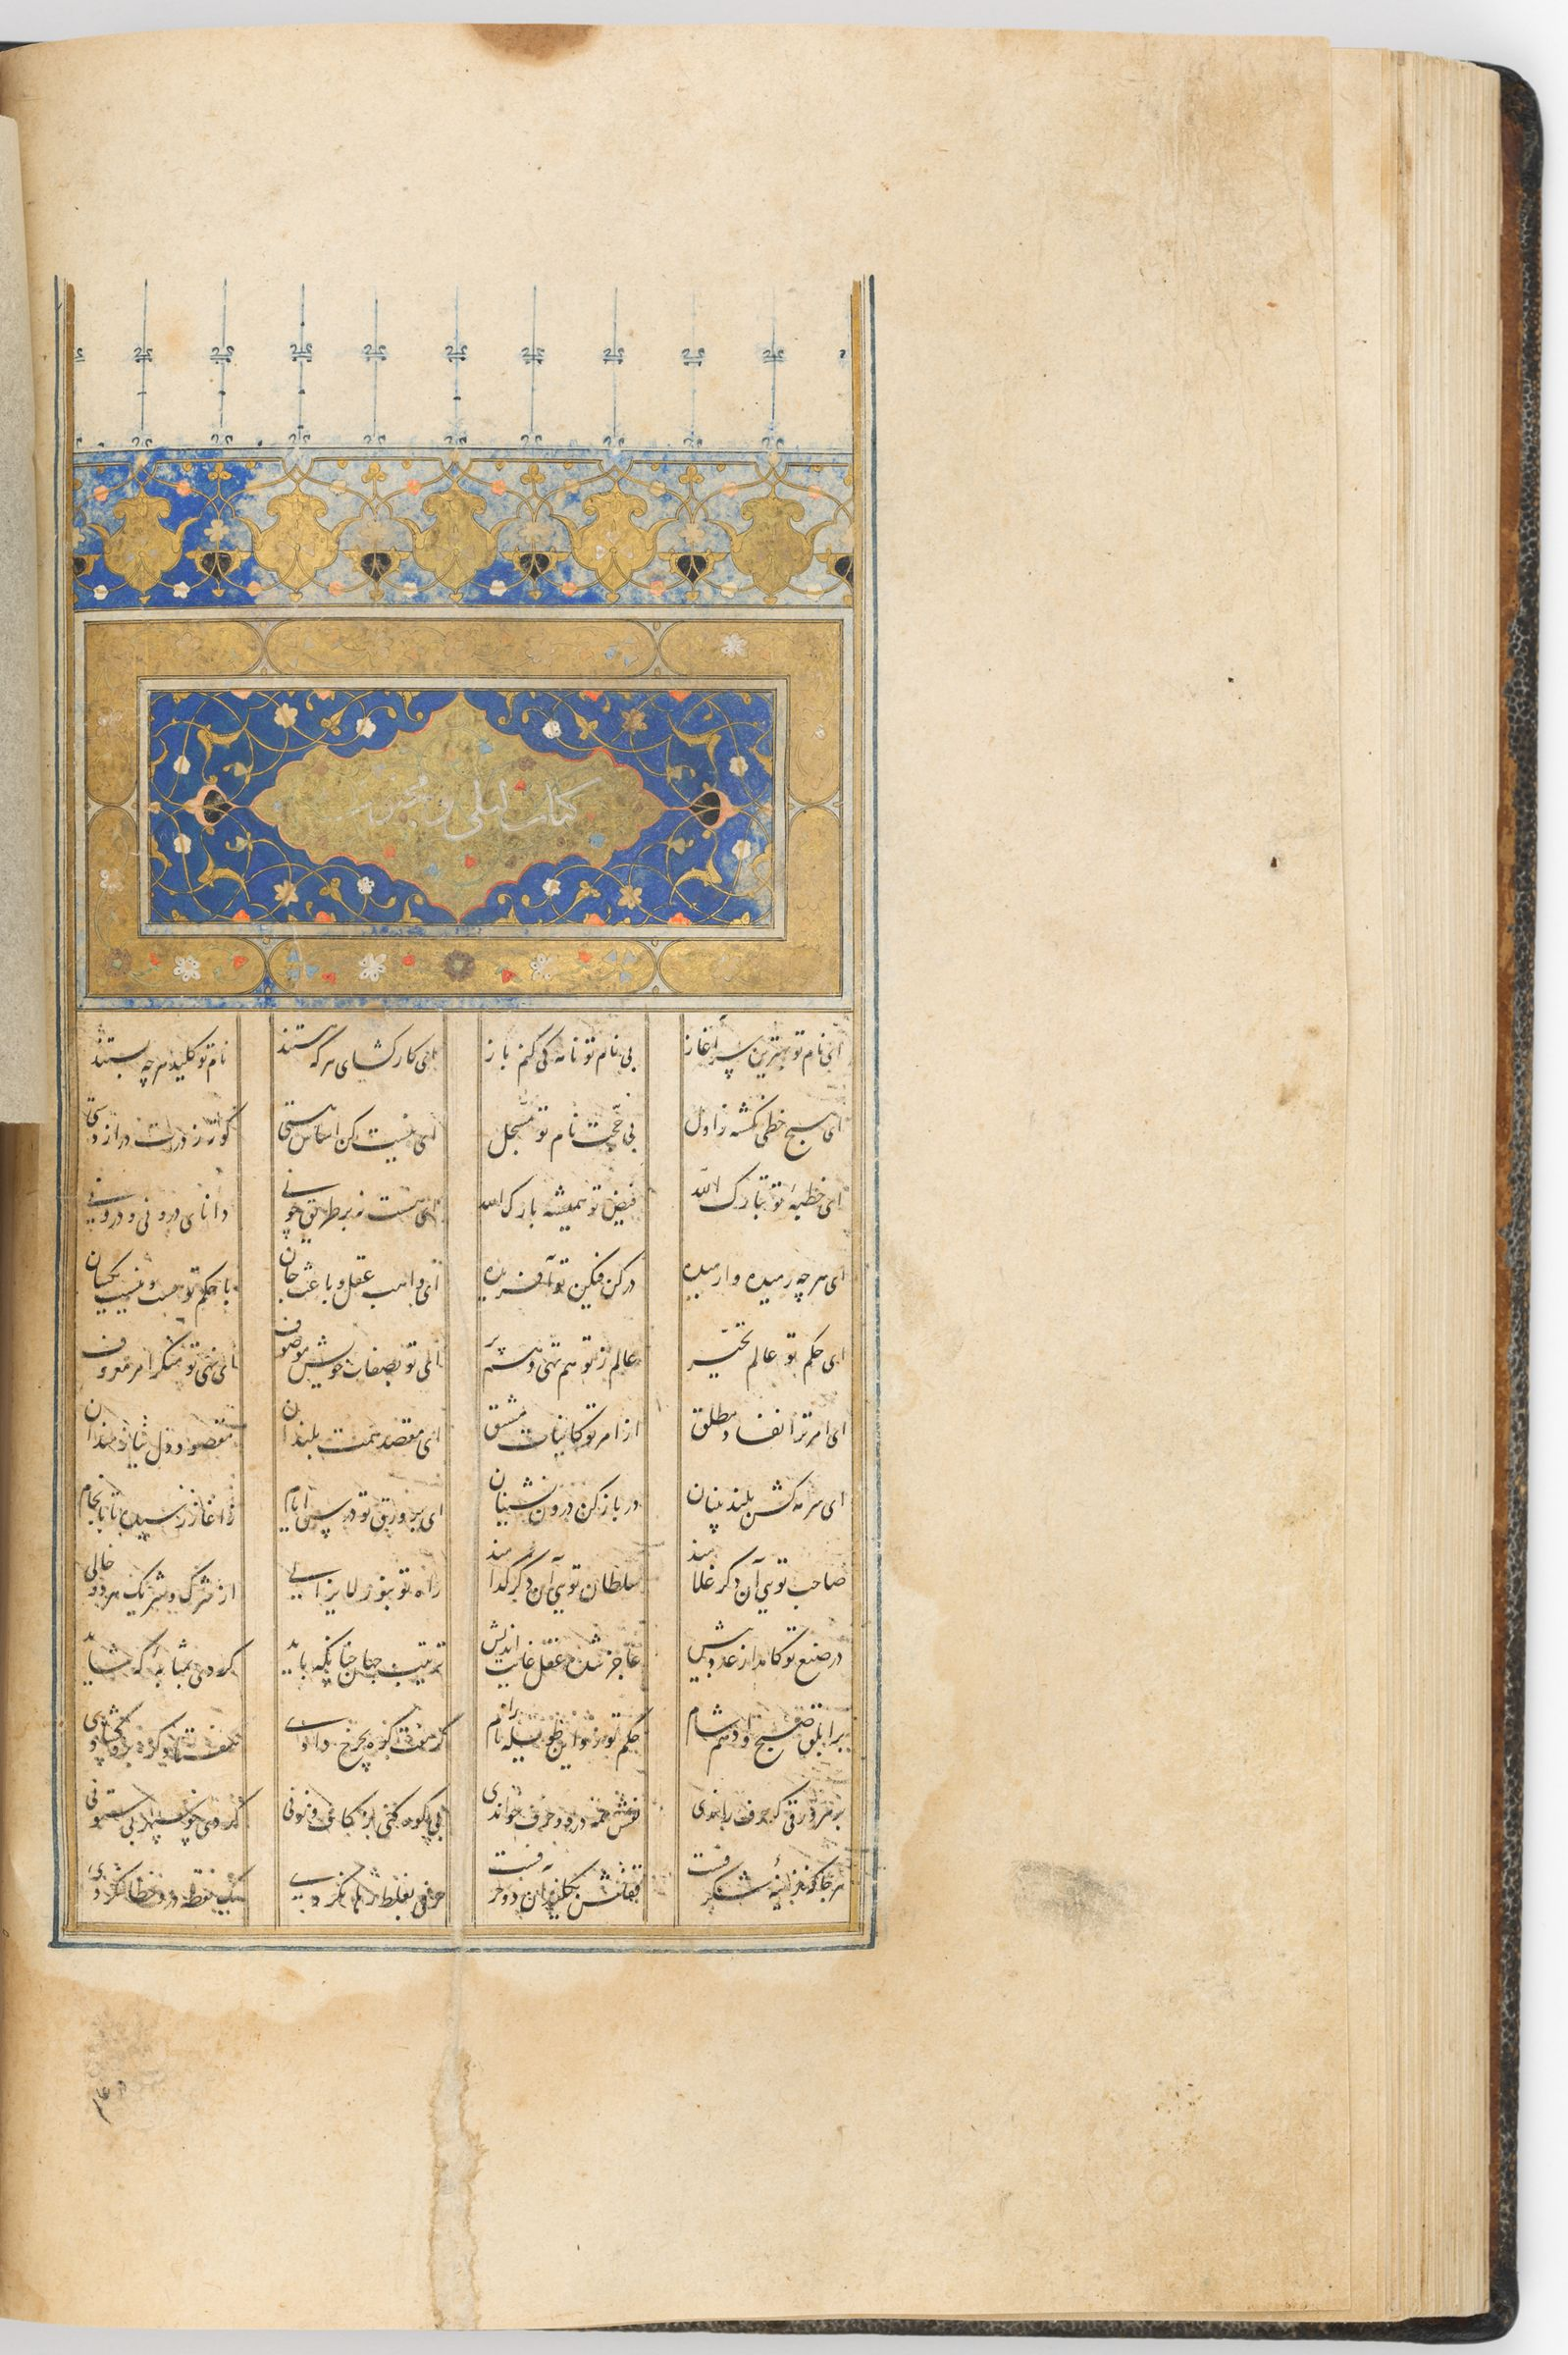 Text Folio Containing The Colophon At The End Of Khusraw And Shirin, Illuminated Sarlawh Of Layla Va Majnun (Text Recto; Sarlawh Verso Of Folio 117), From A Manuscript Of The Khamsa By Nizami